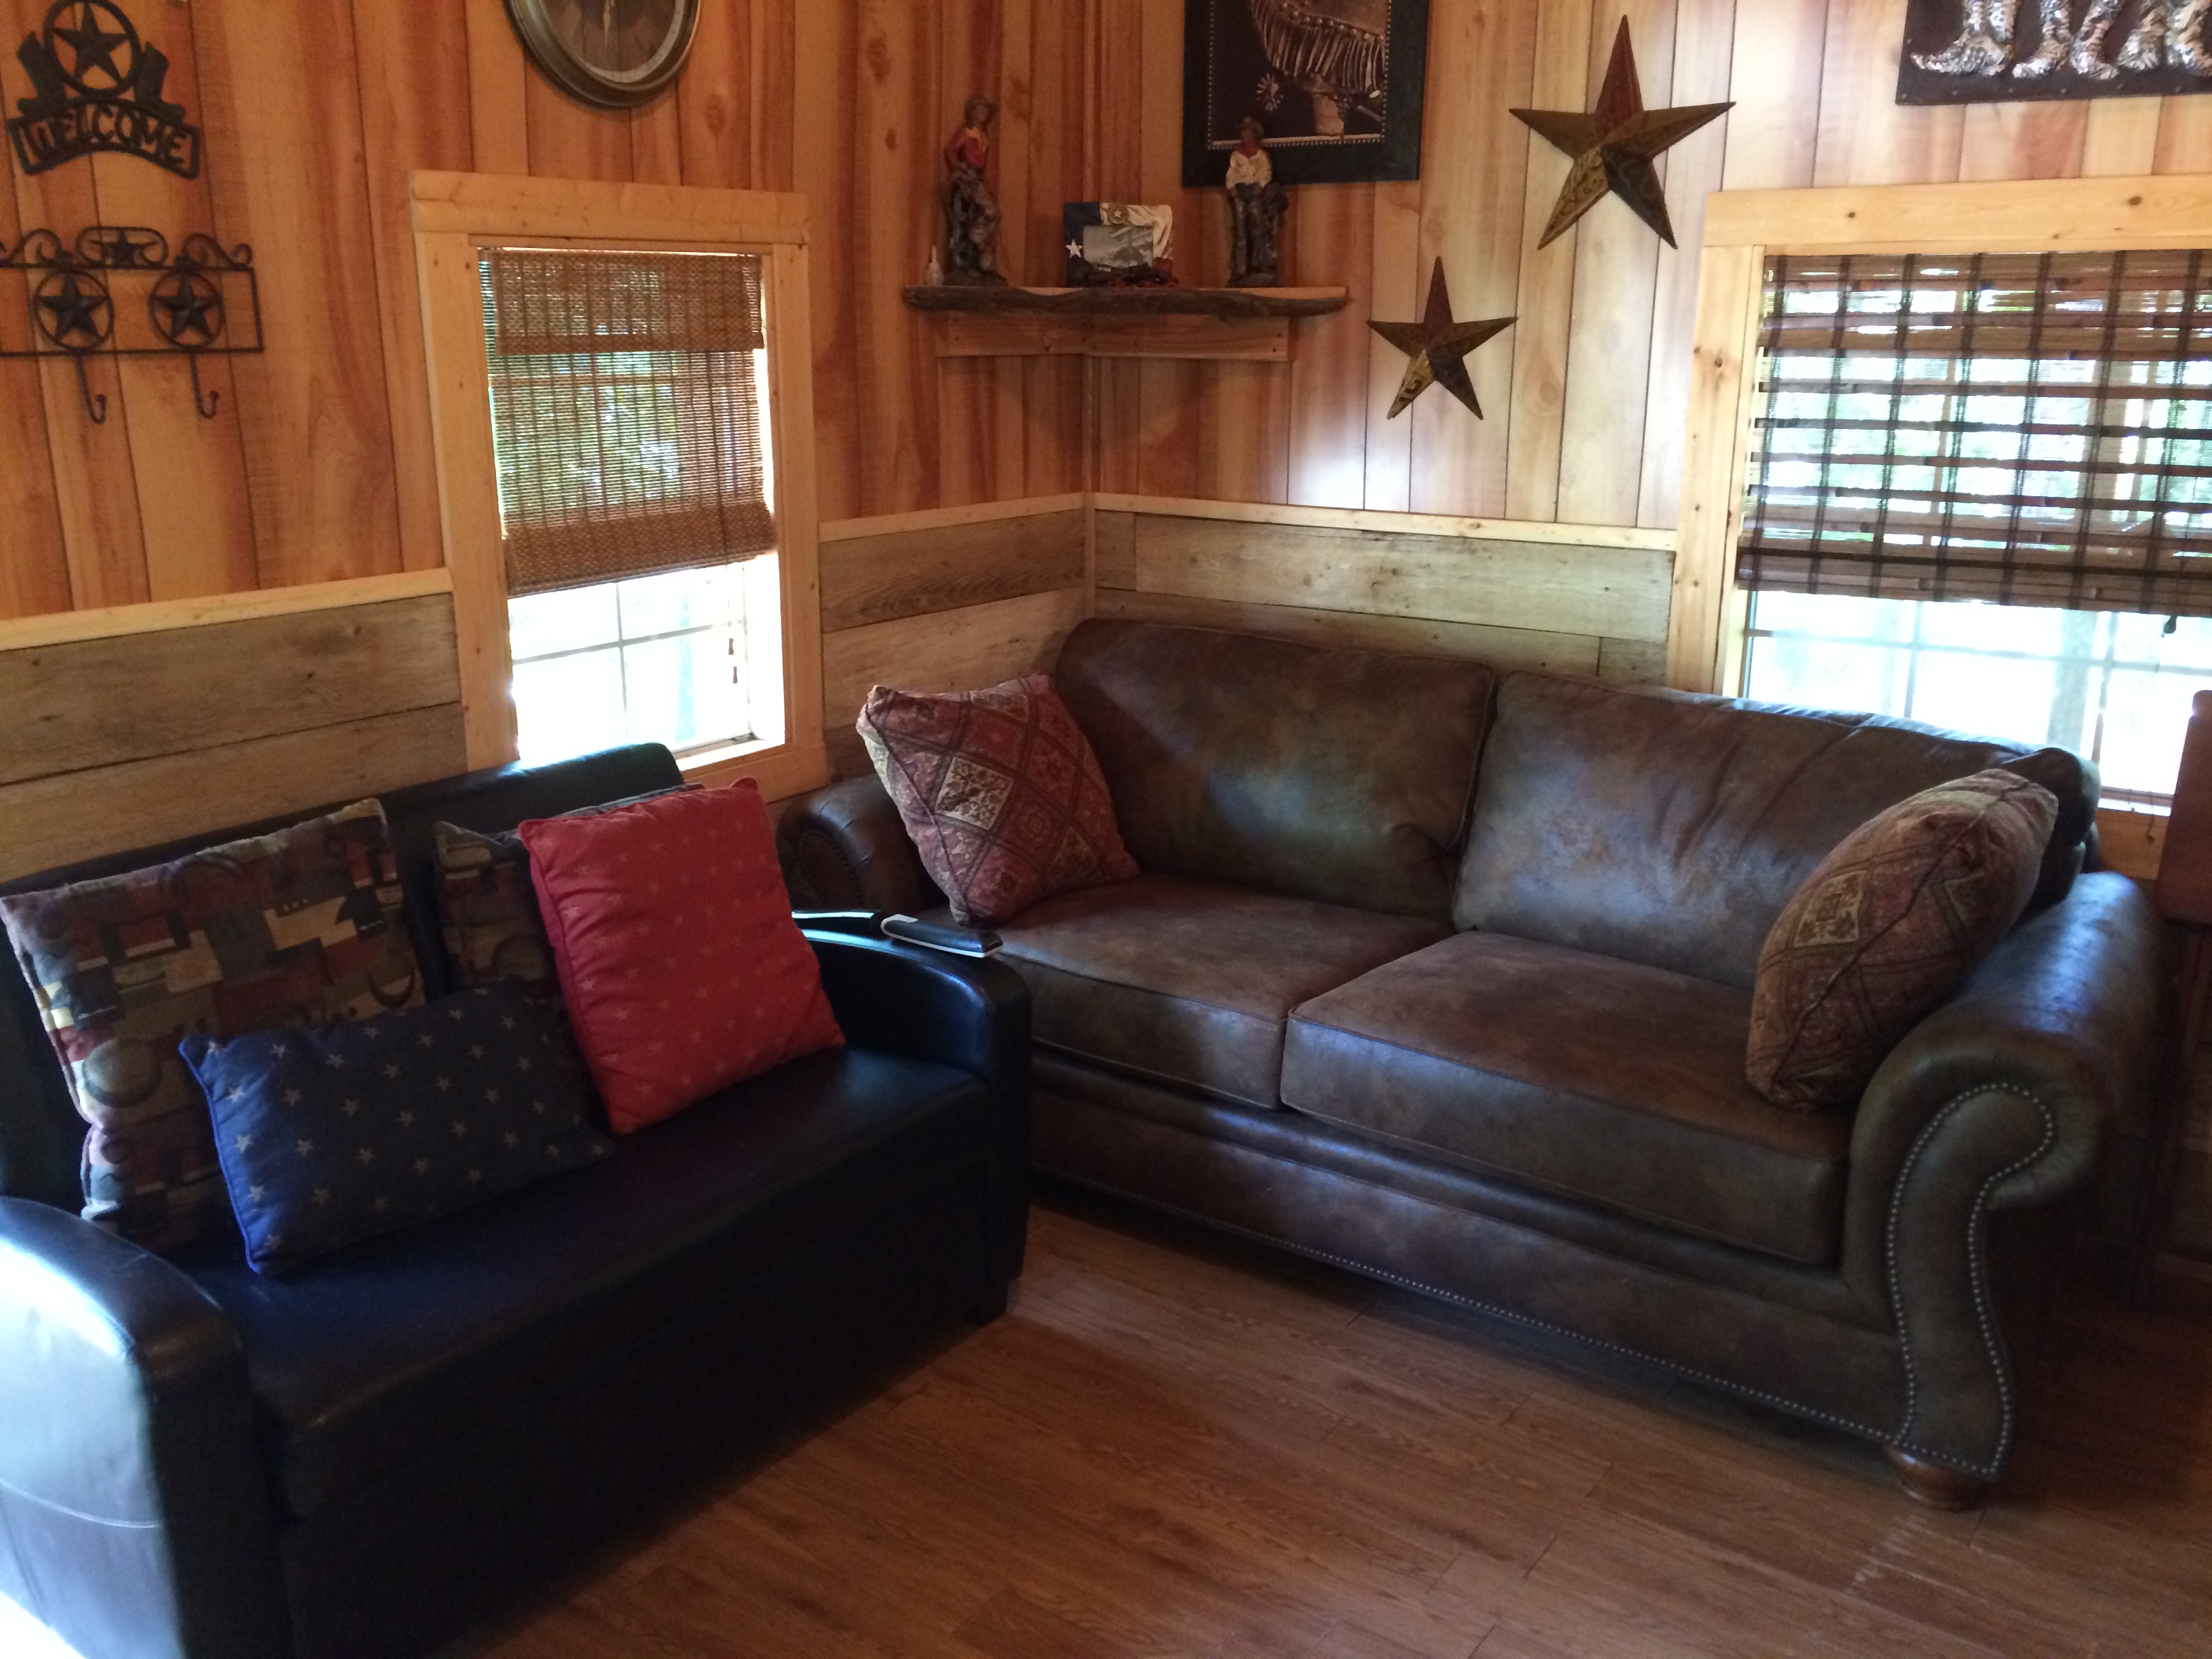 Cabin Creek Cabins: Tyler, Lindale